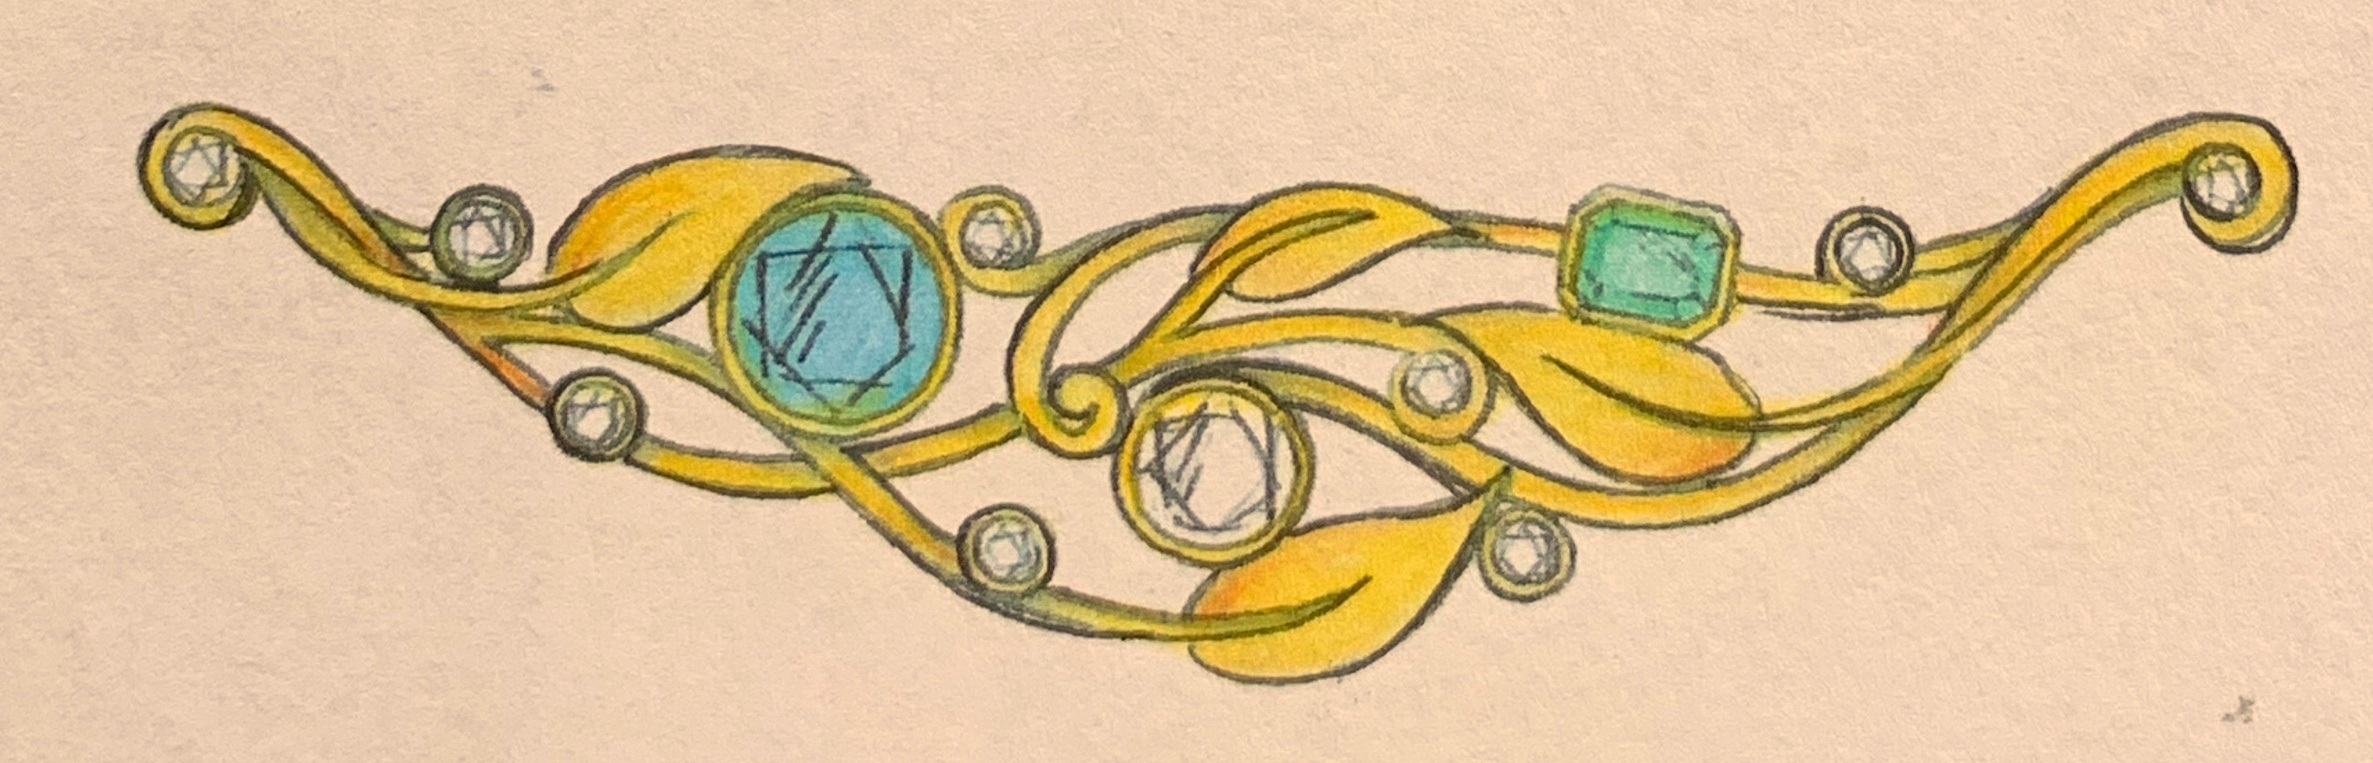 Emerald, blue topaz and diamond necklace - chain to be added.